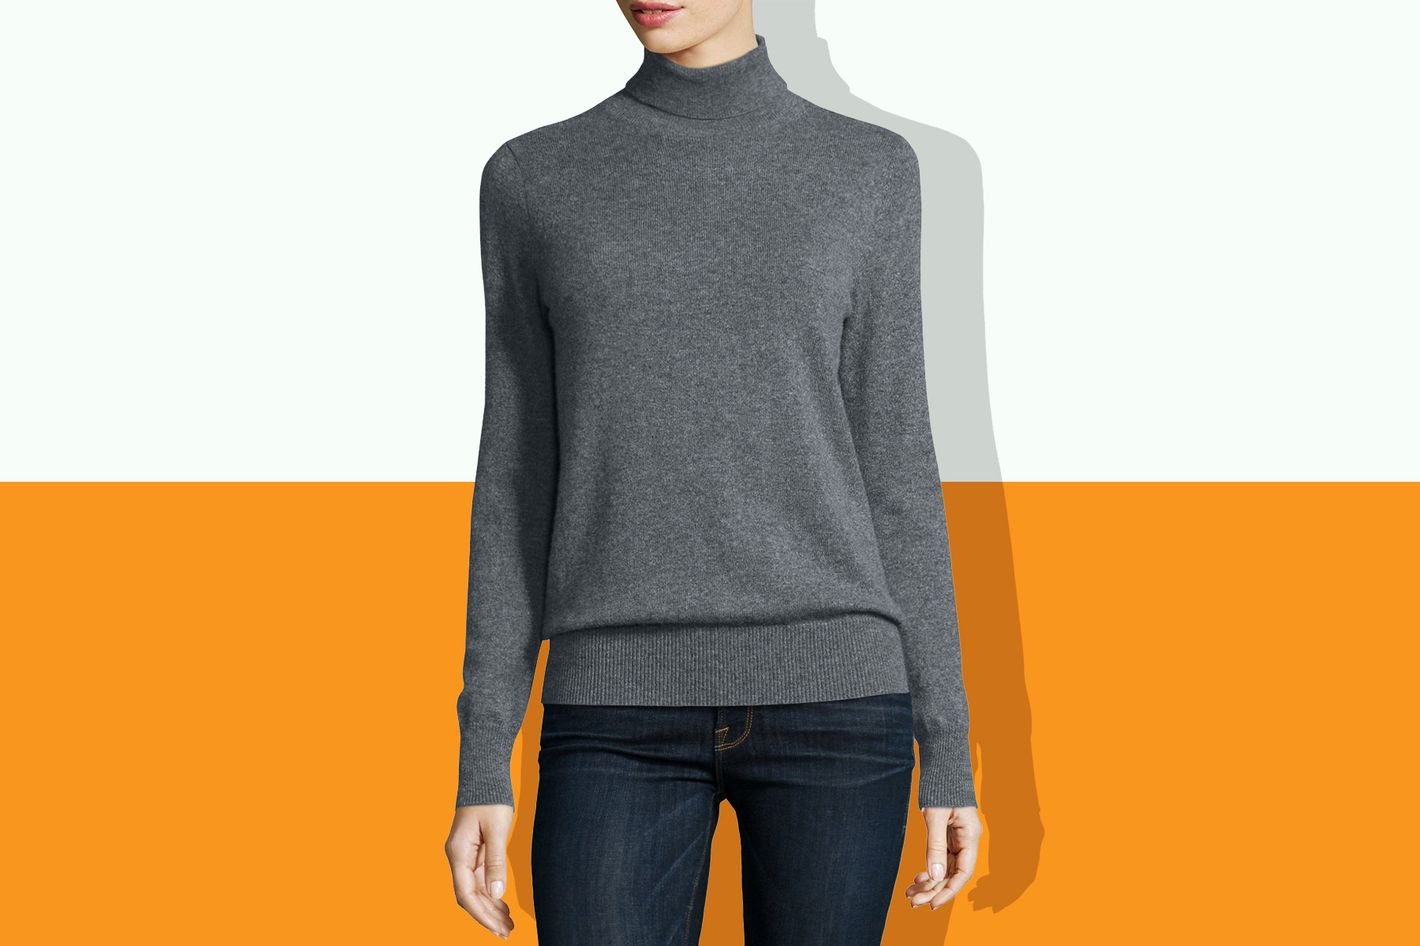 A 70 Percent Off Neiman Marcus Cashmere Sweater